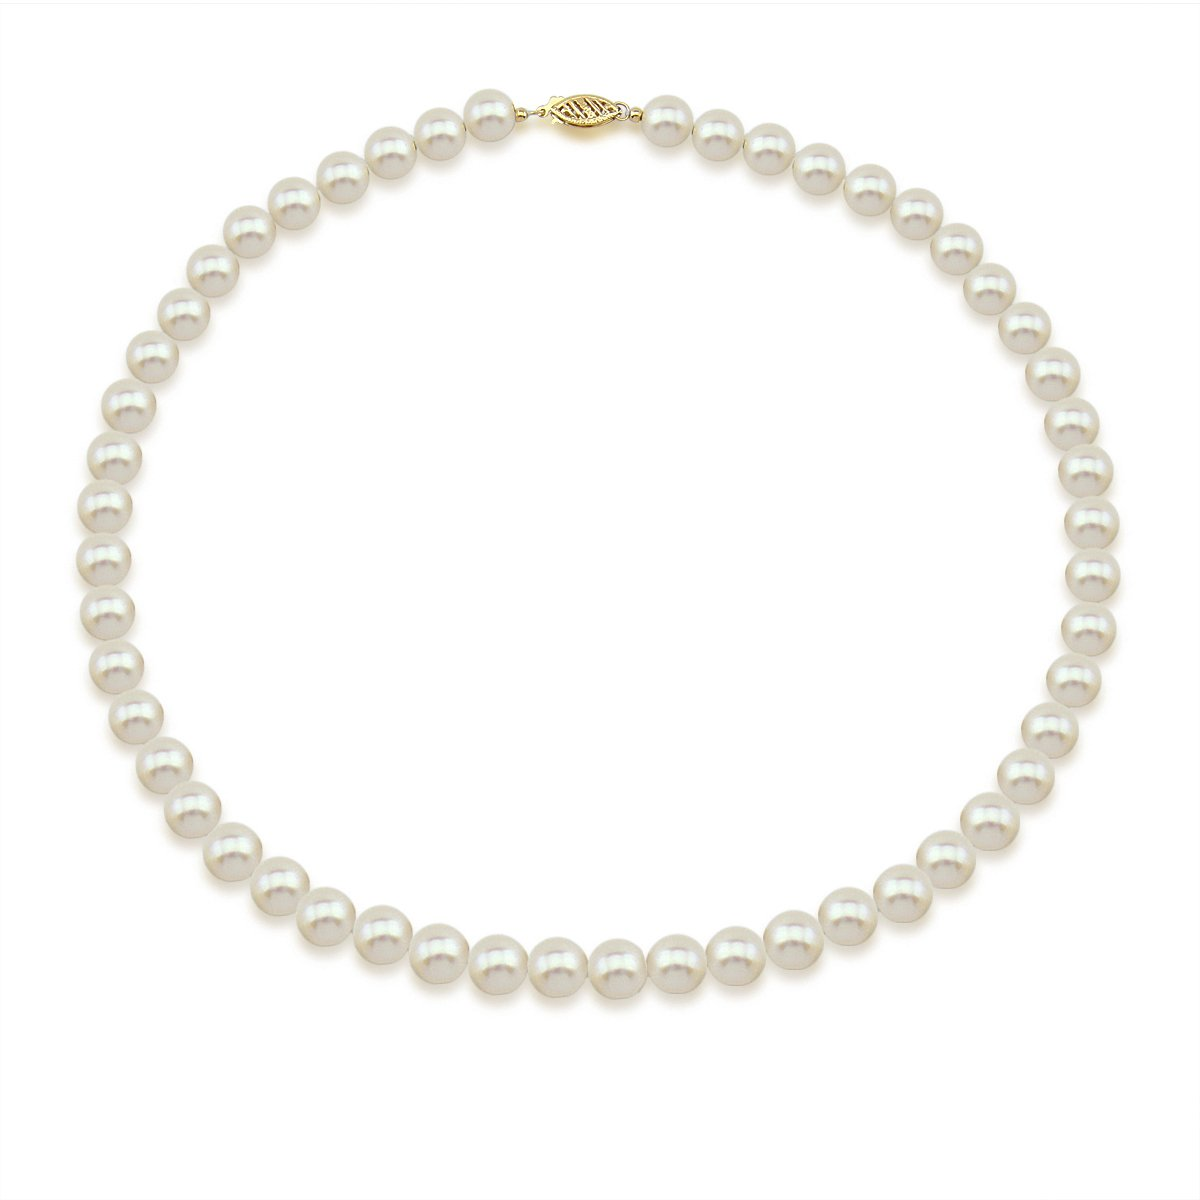 14K Yellow Gold 7.5-8.0mm High Luster White Freshwater Cultured Pearl Necklace, 22 Inch by Akwaya